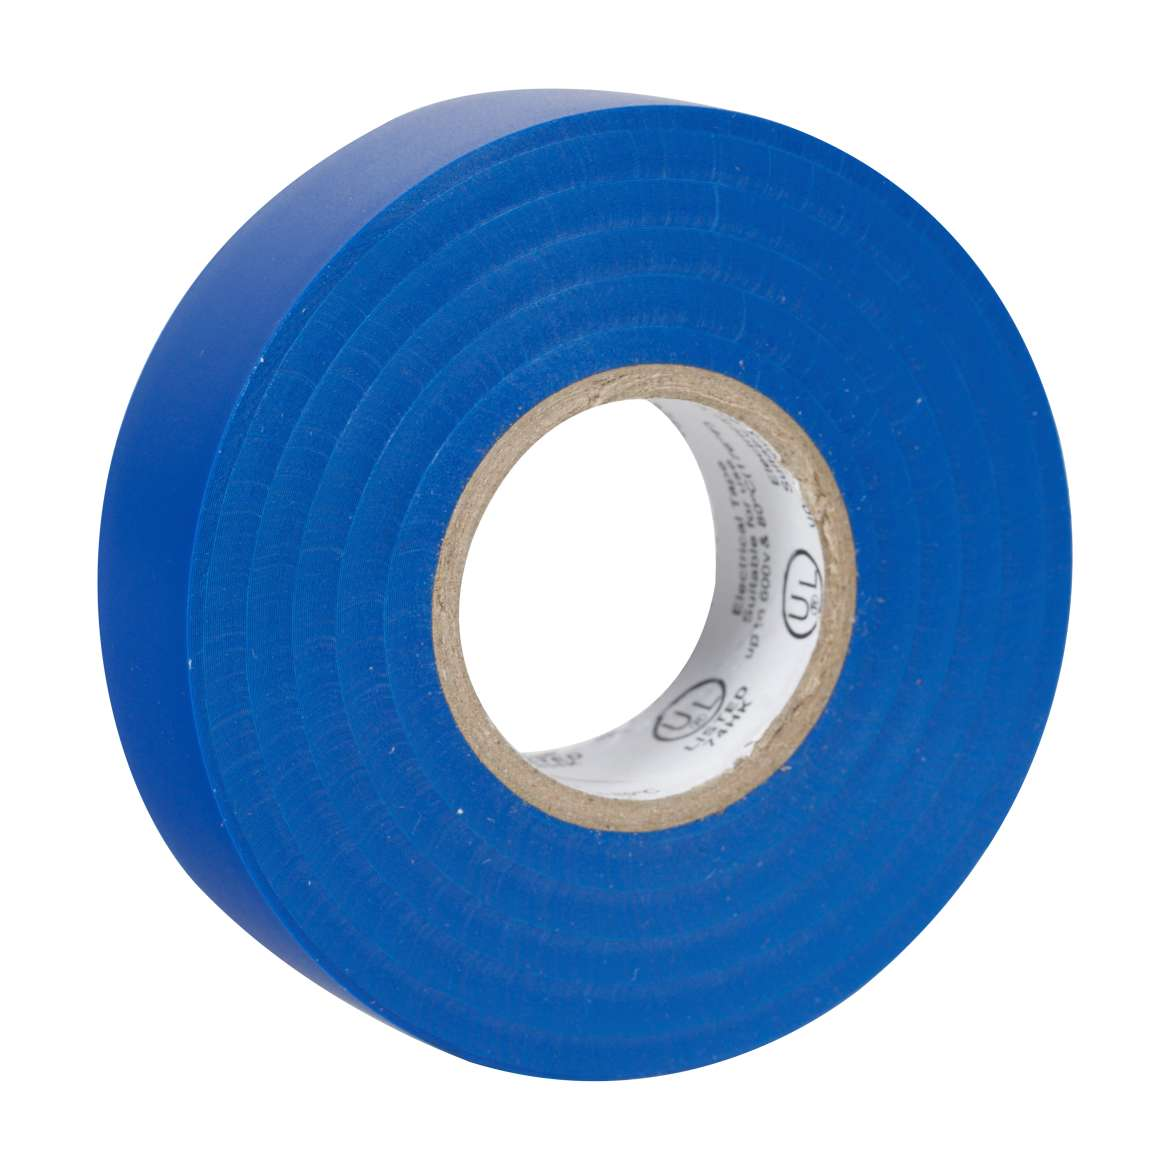 Professional Electrical Tape